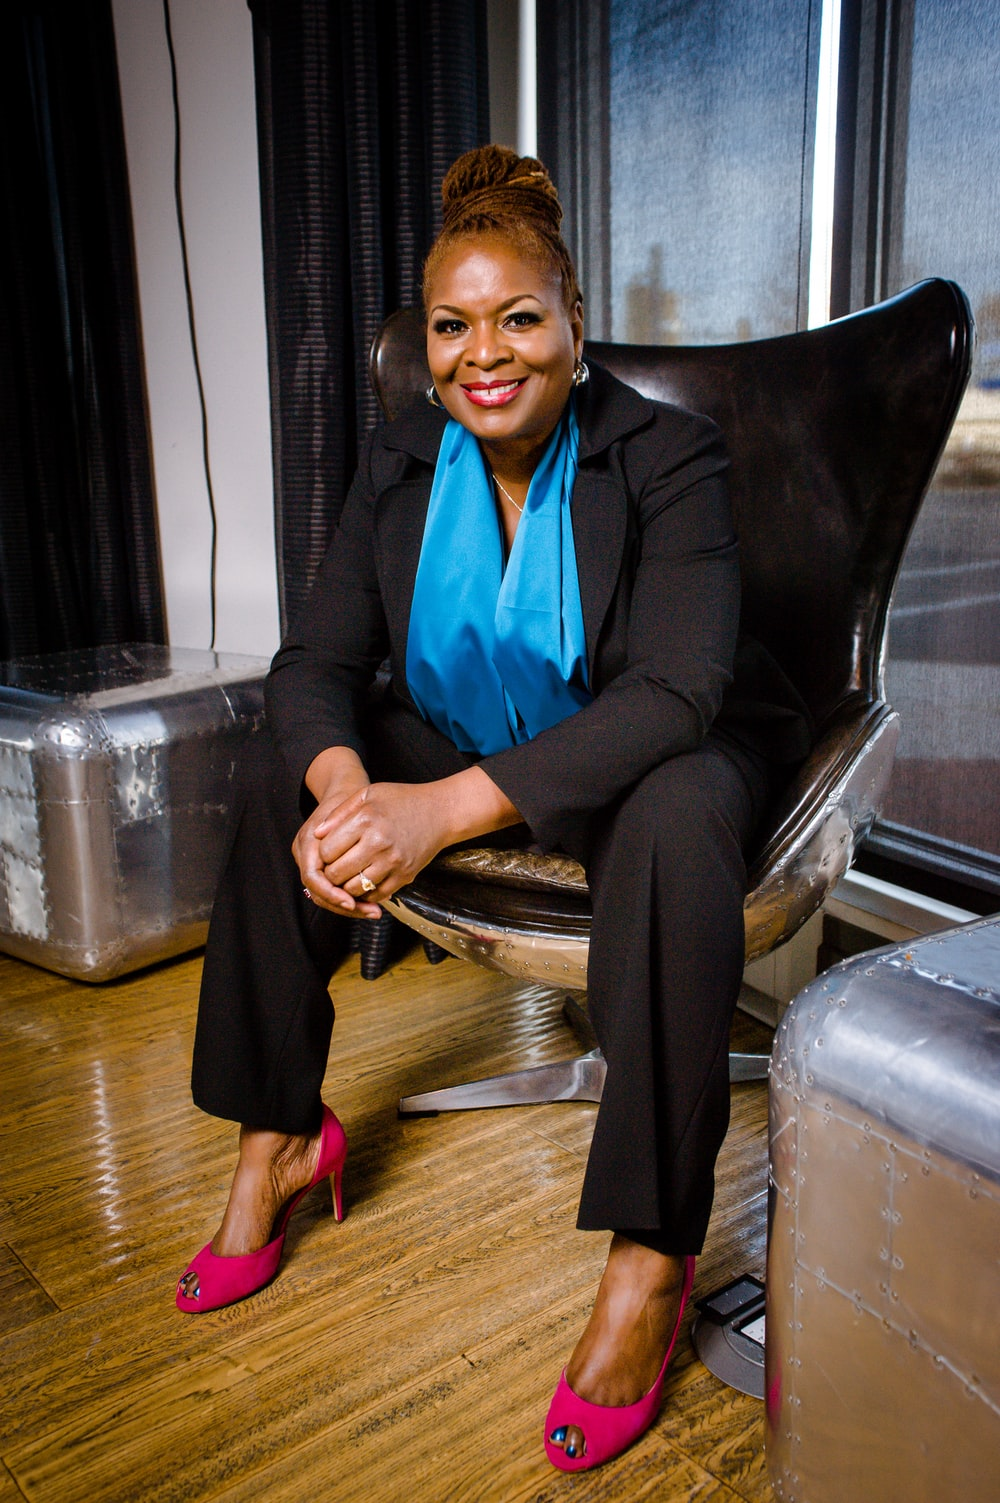 woman in black trouser suit sitting on black leather chair smiling